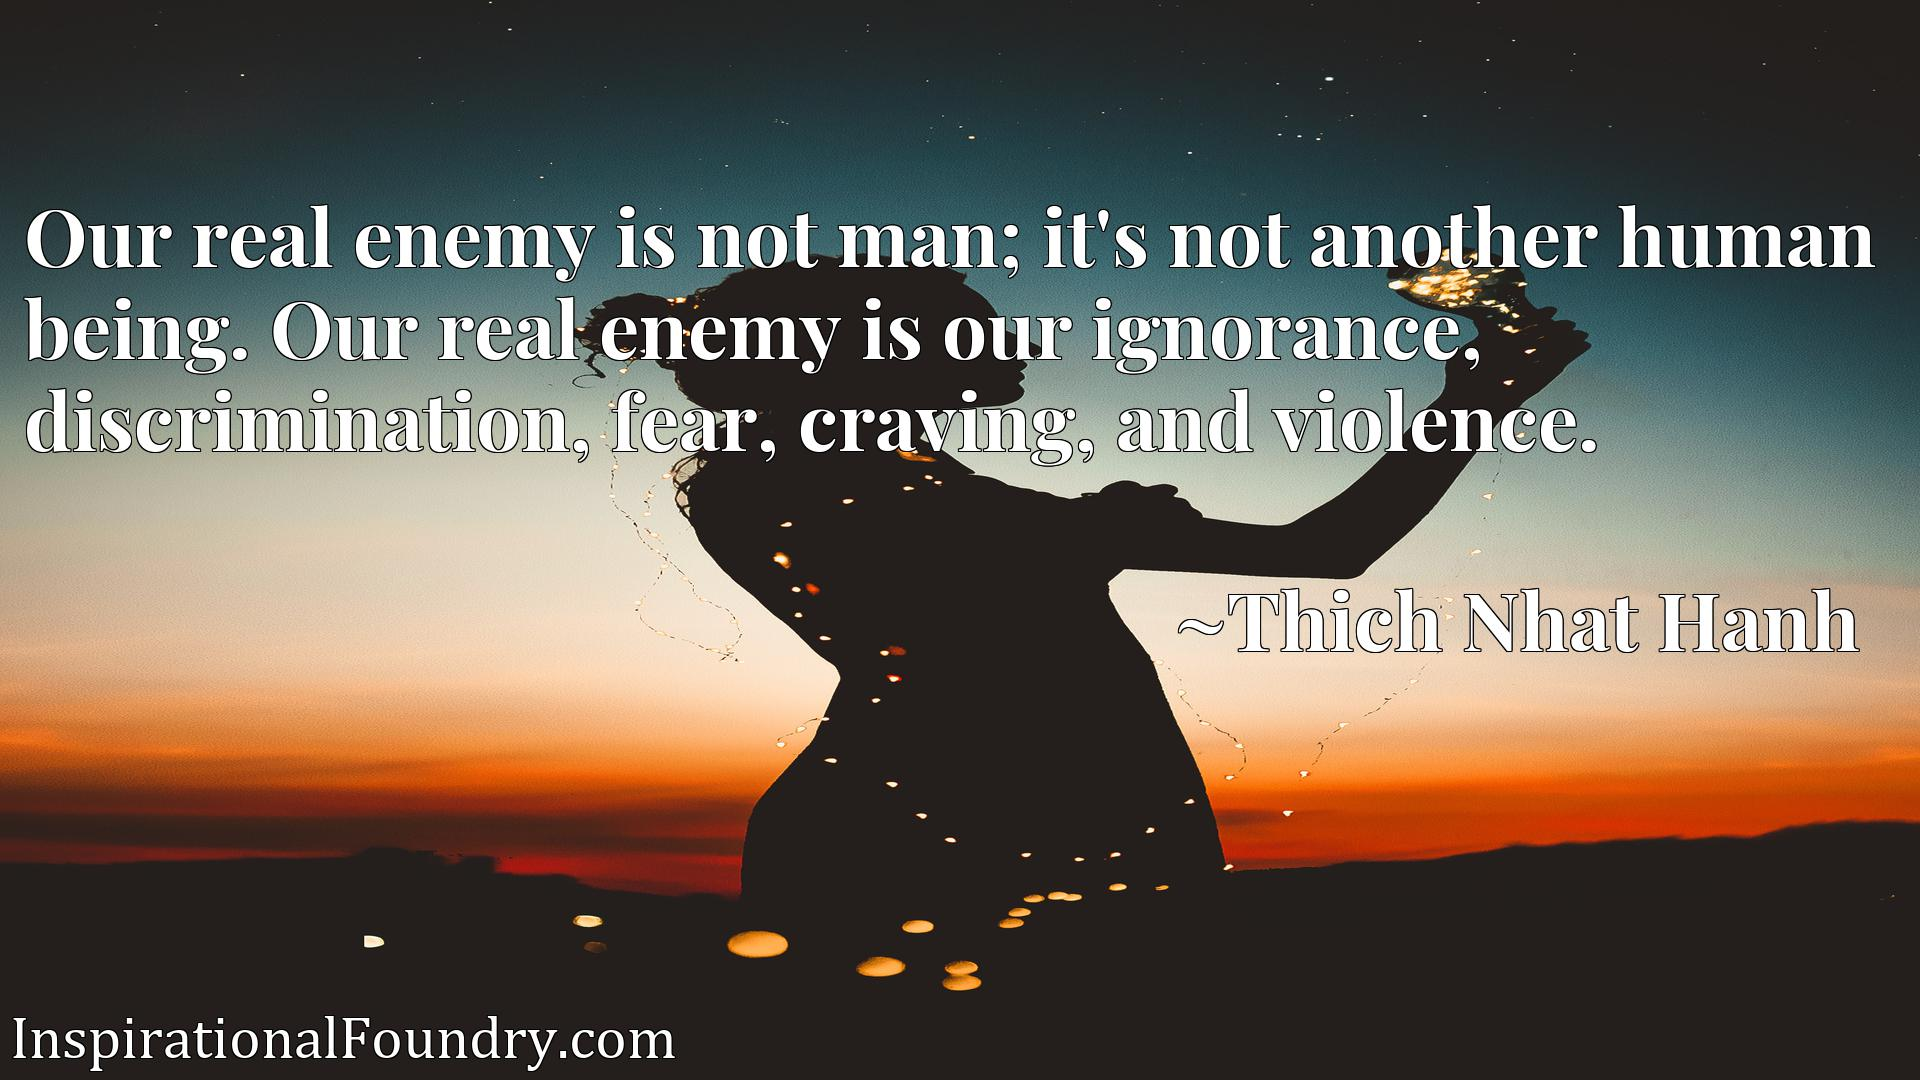 Our real enemy is not man; it's not another human being. Our real enemy is our ignorance, discrimination, fear, craving, and violence.